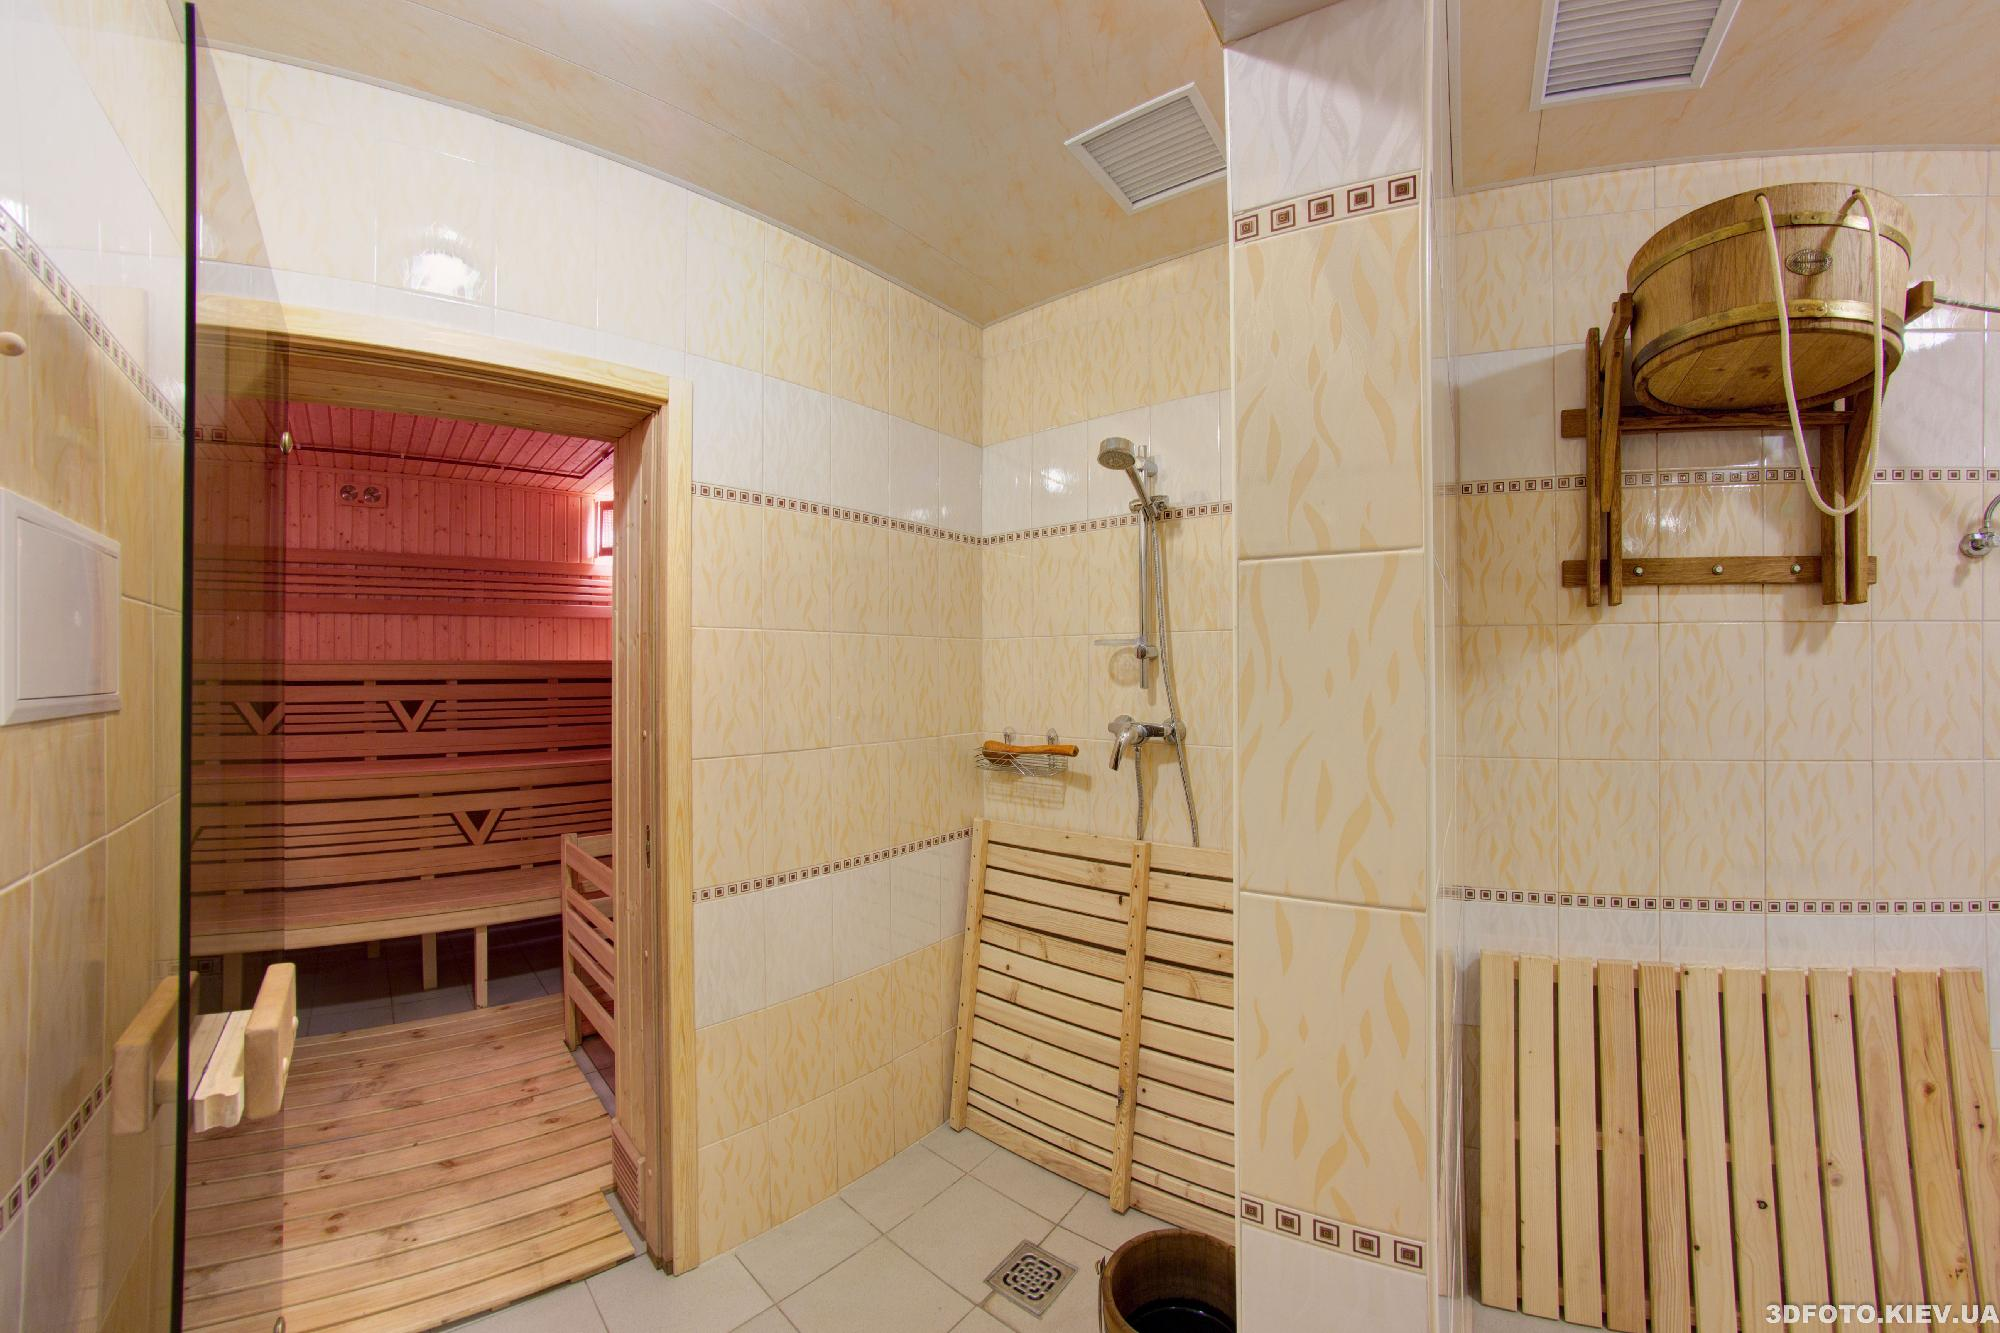 Steam sauna